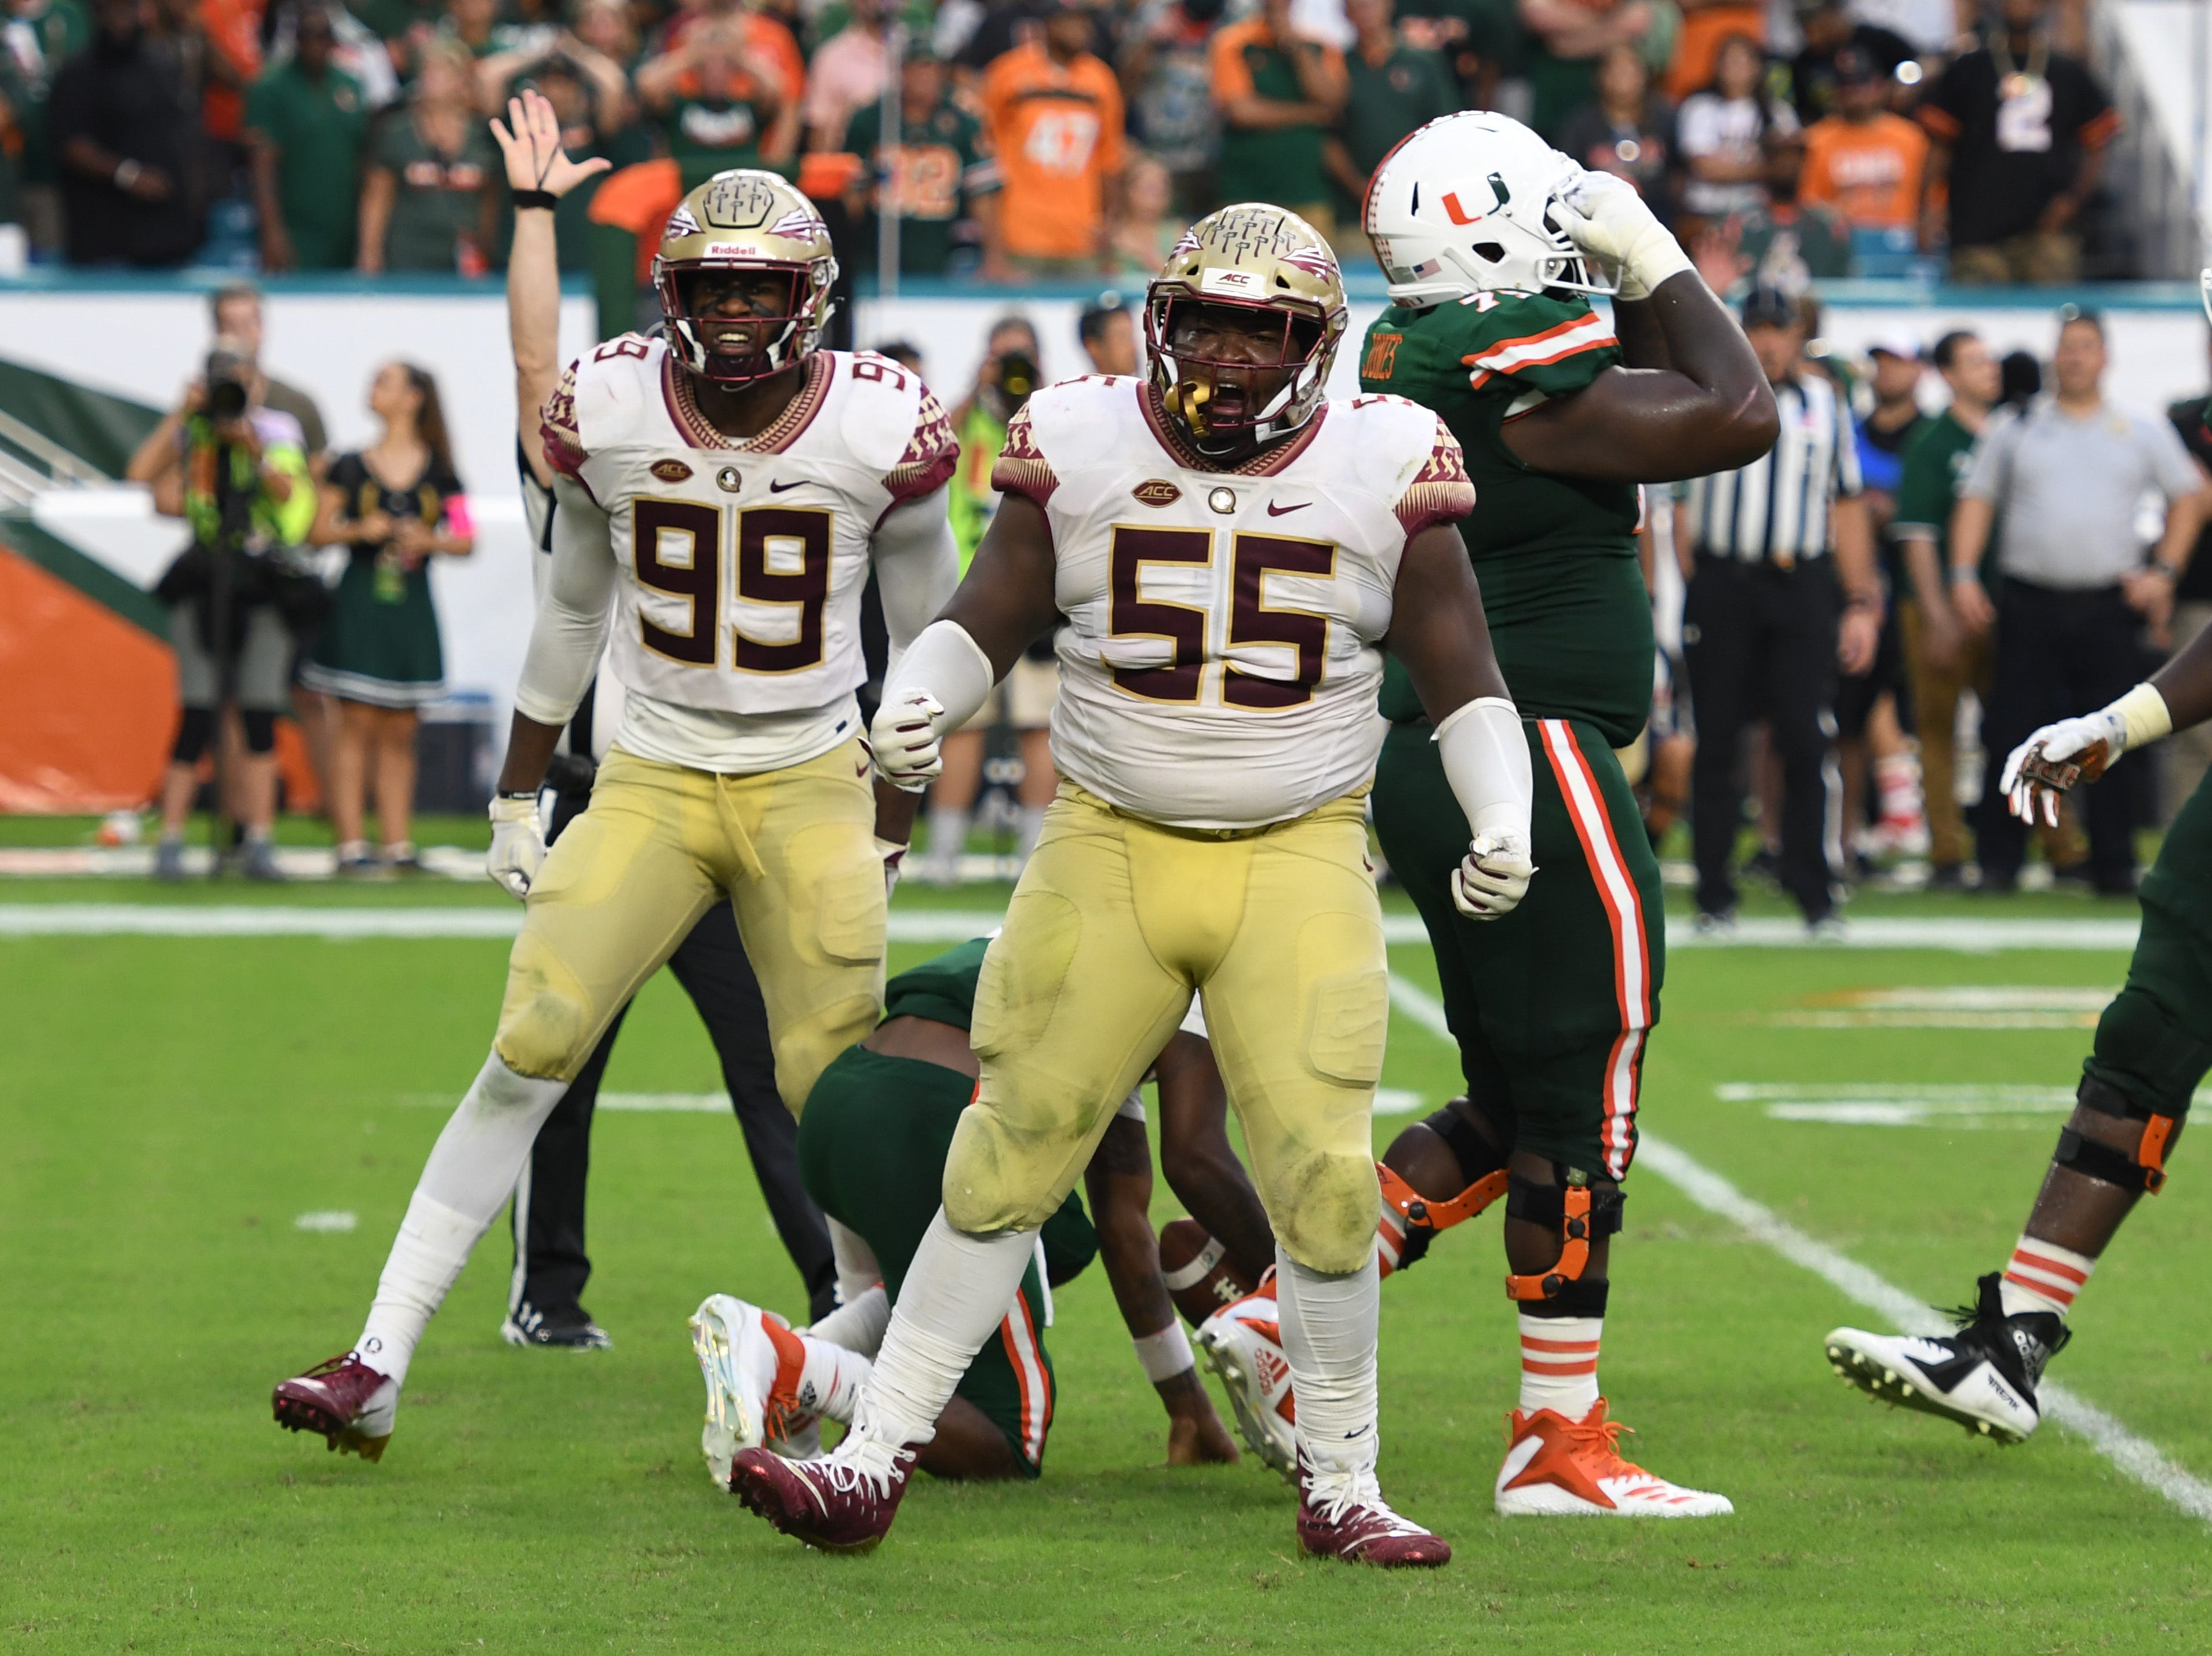 FSU redshirt senior nose guard Fredrick Jones (55) celebrating after sacking the quarterback in the fourth quarter of FSU's game against Miami at the Hard Rock Stadium on October 6th 2018.